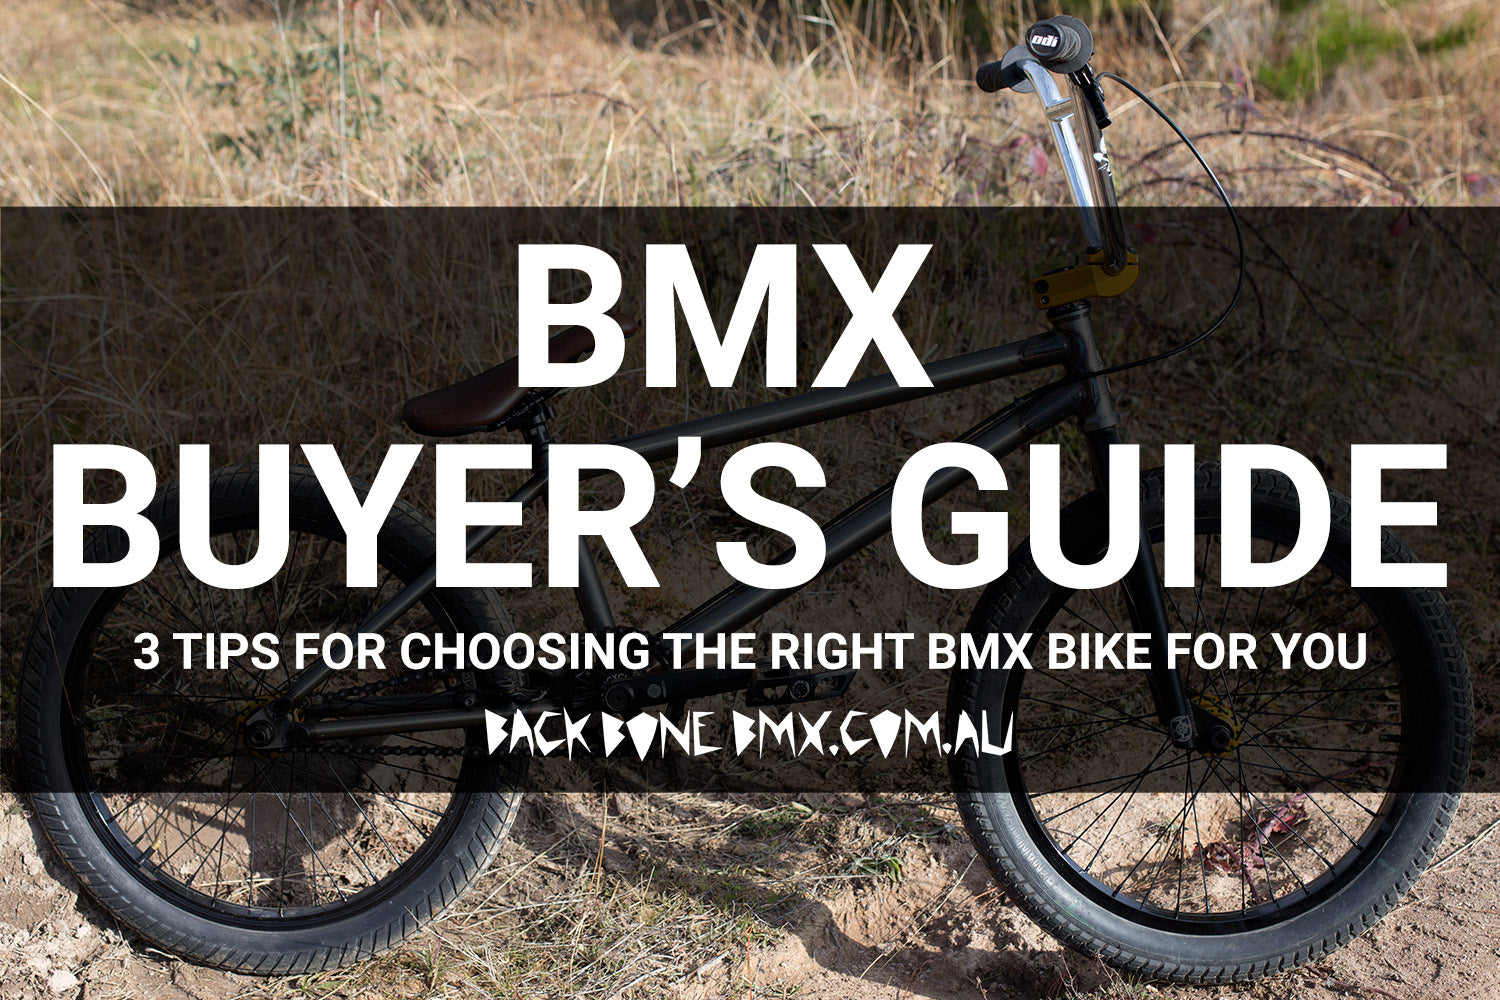 best bmx bikes for sale bmx buyer's guide